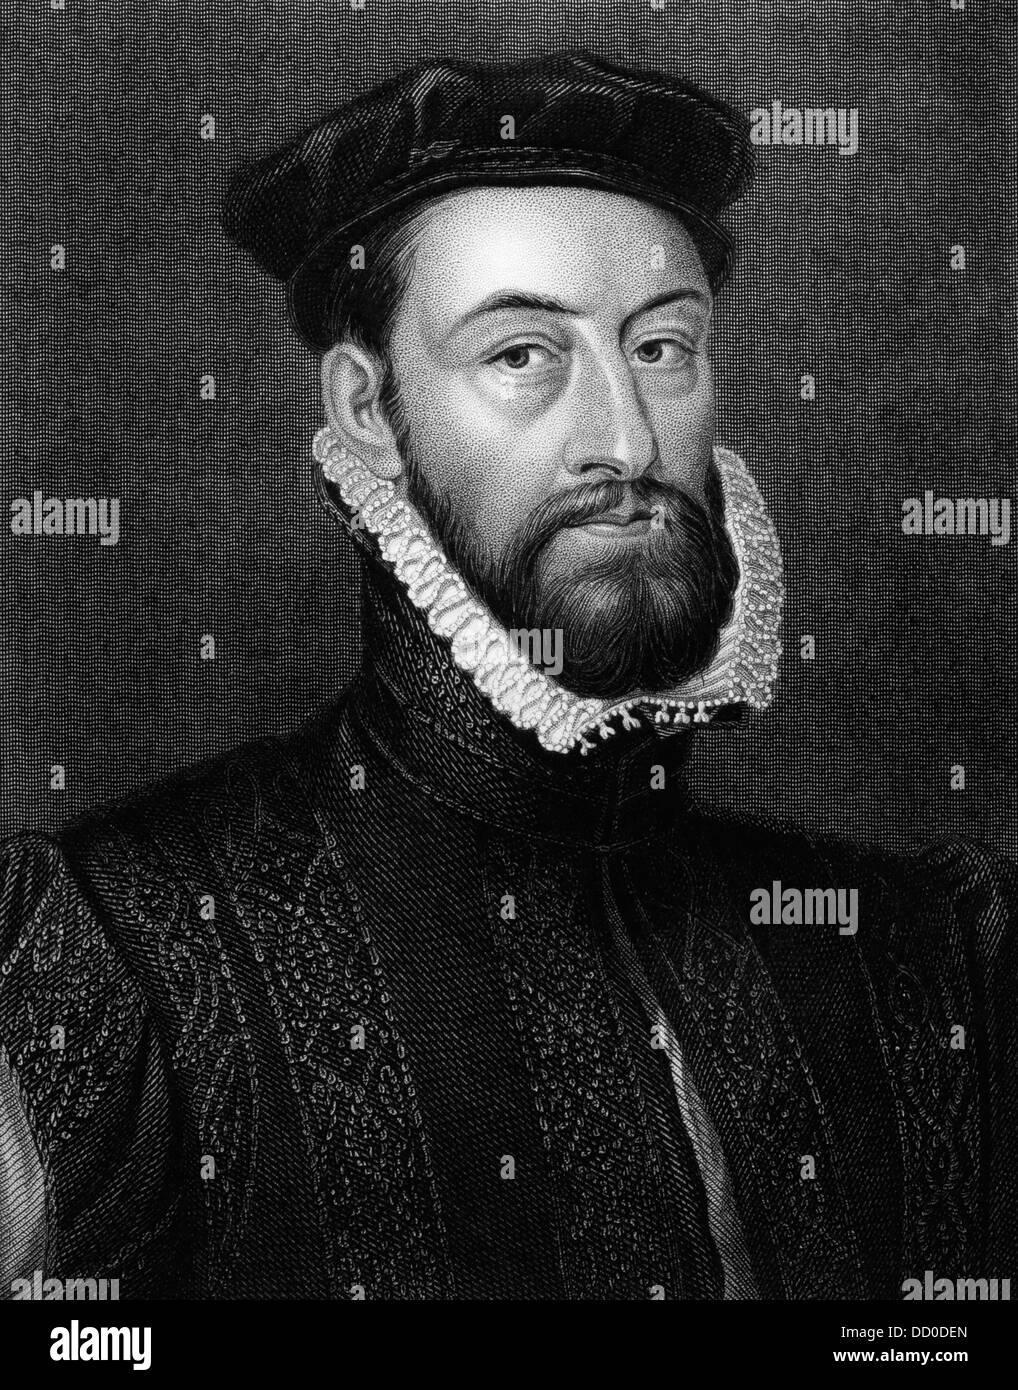 James Stewart, 1st Earl of Moray (1531-1570) on engraving from 1829. Stock Photo